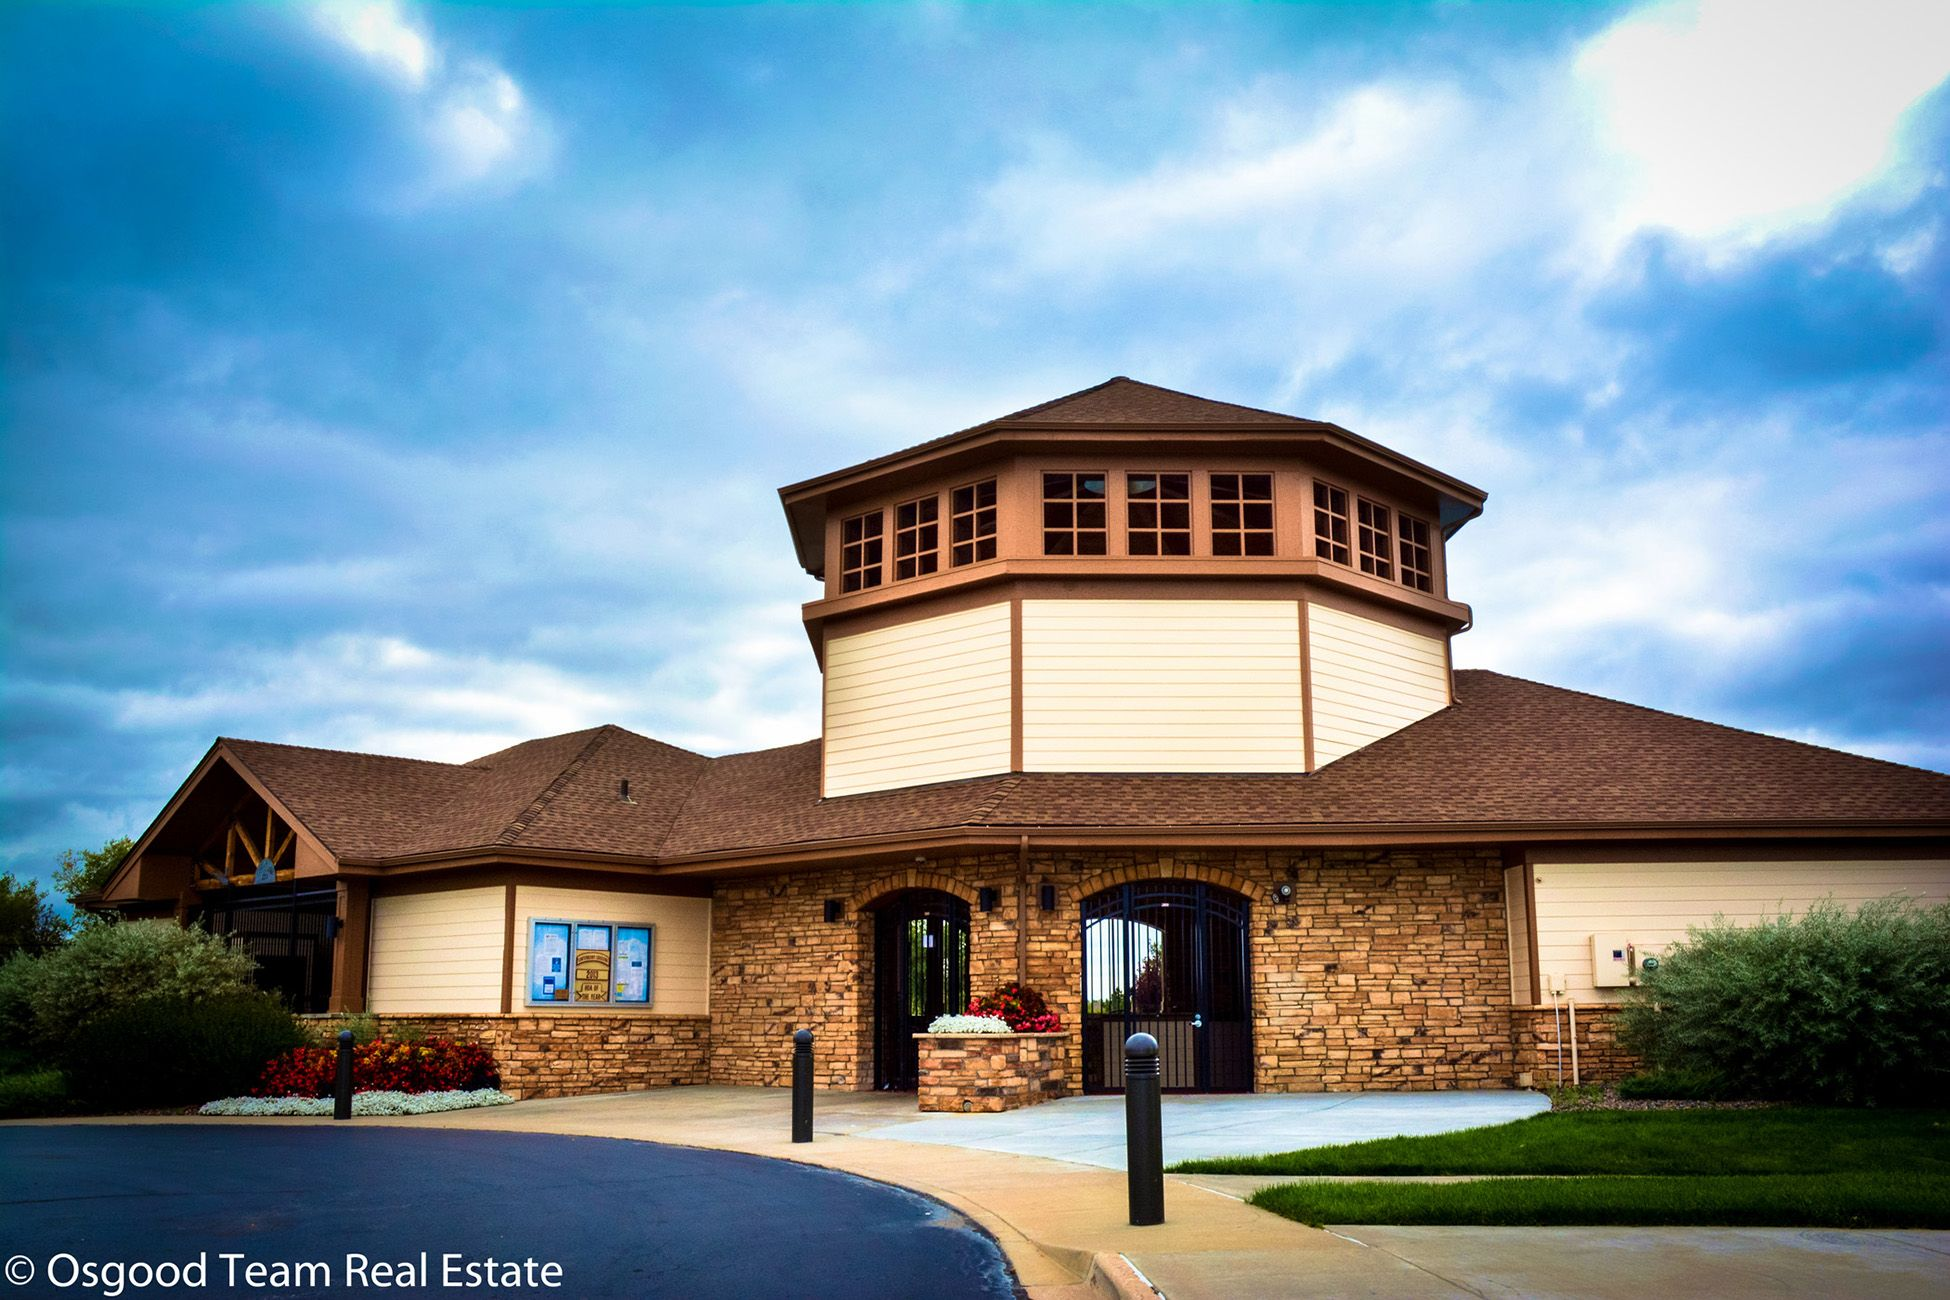 This is the New Image Of Patio Homes for Sale Castle Pines Village